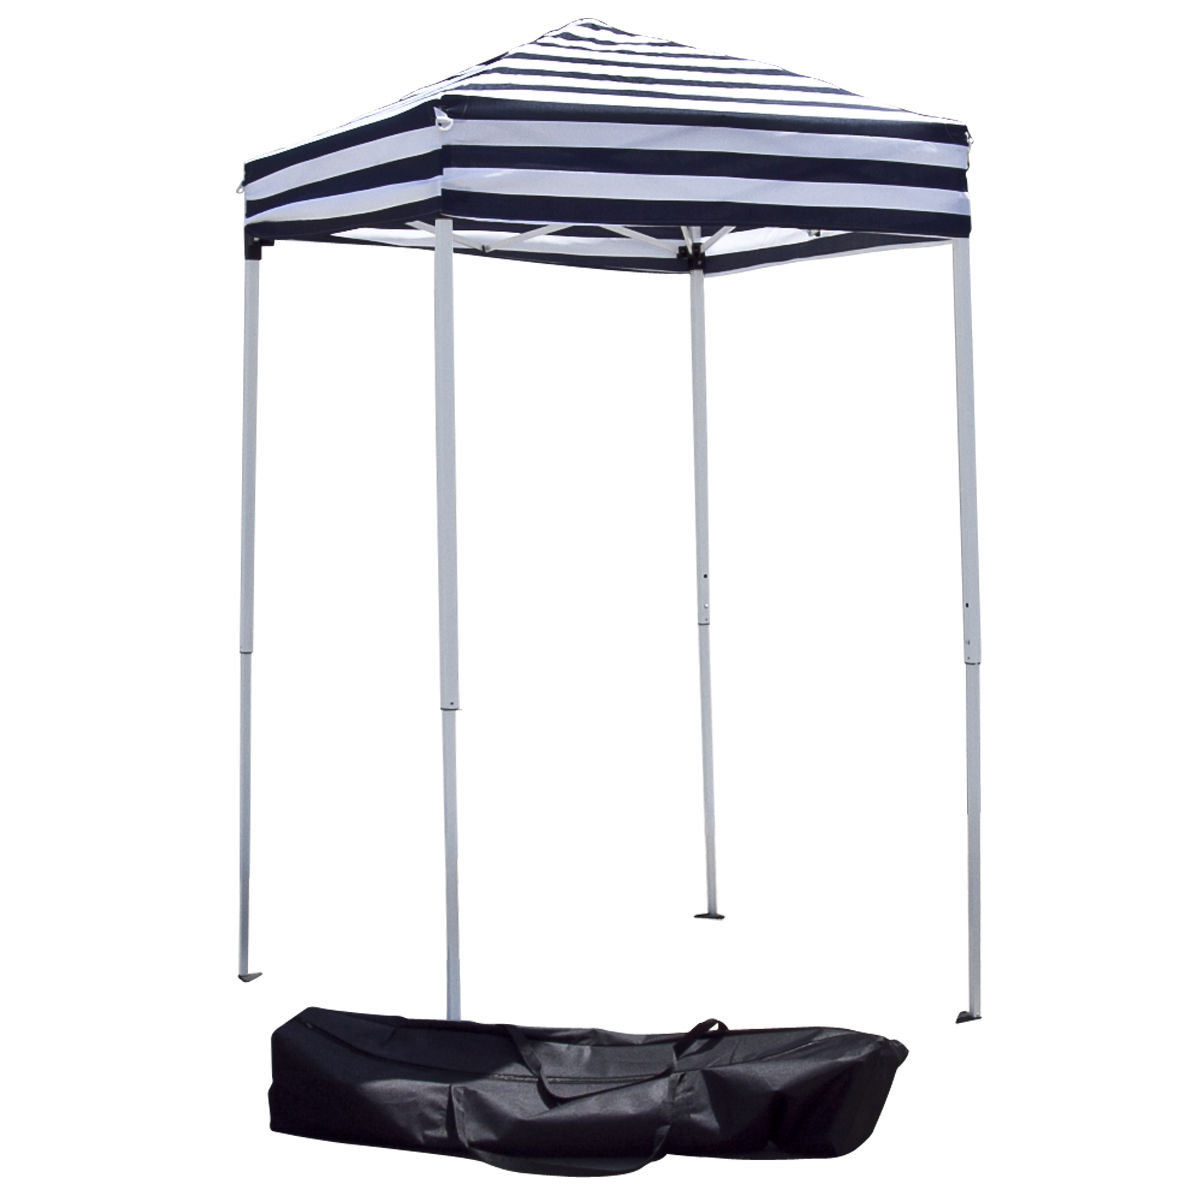 2X Portable Cabana Stripe Changing Room Privacy Tent Pool ...